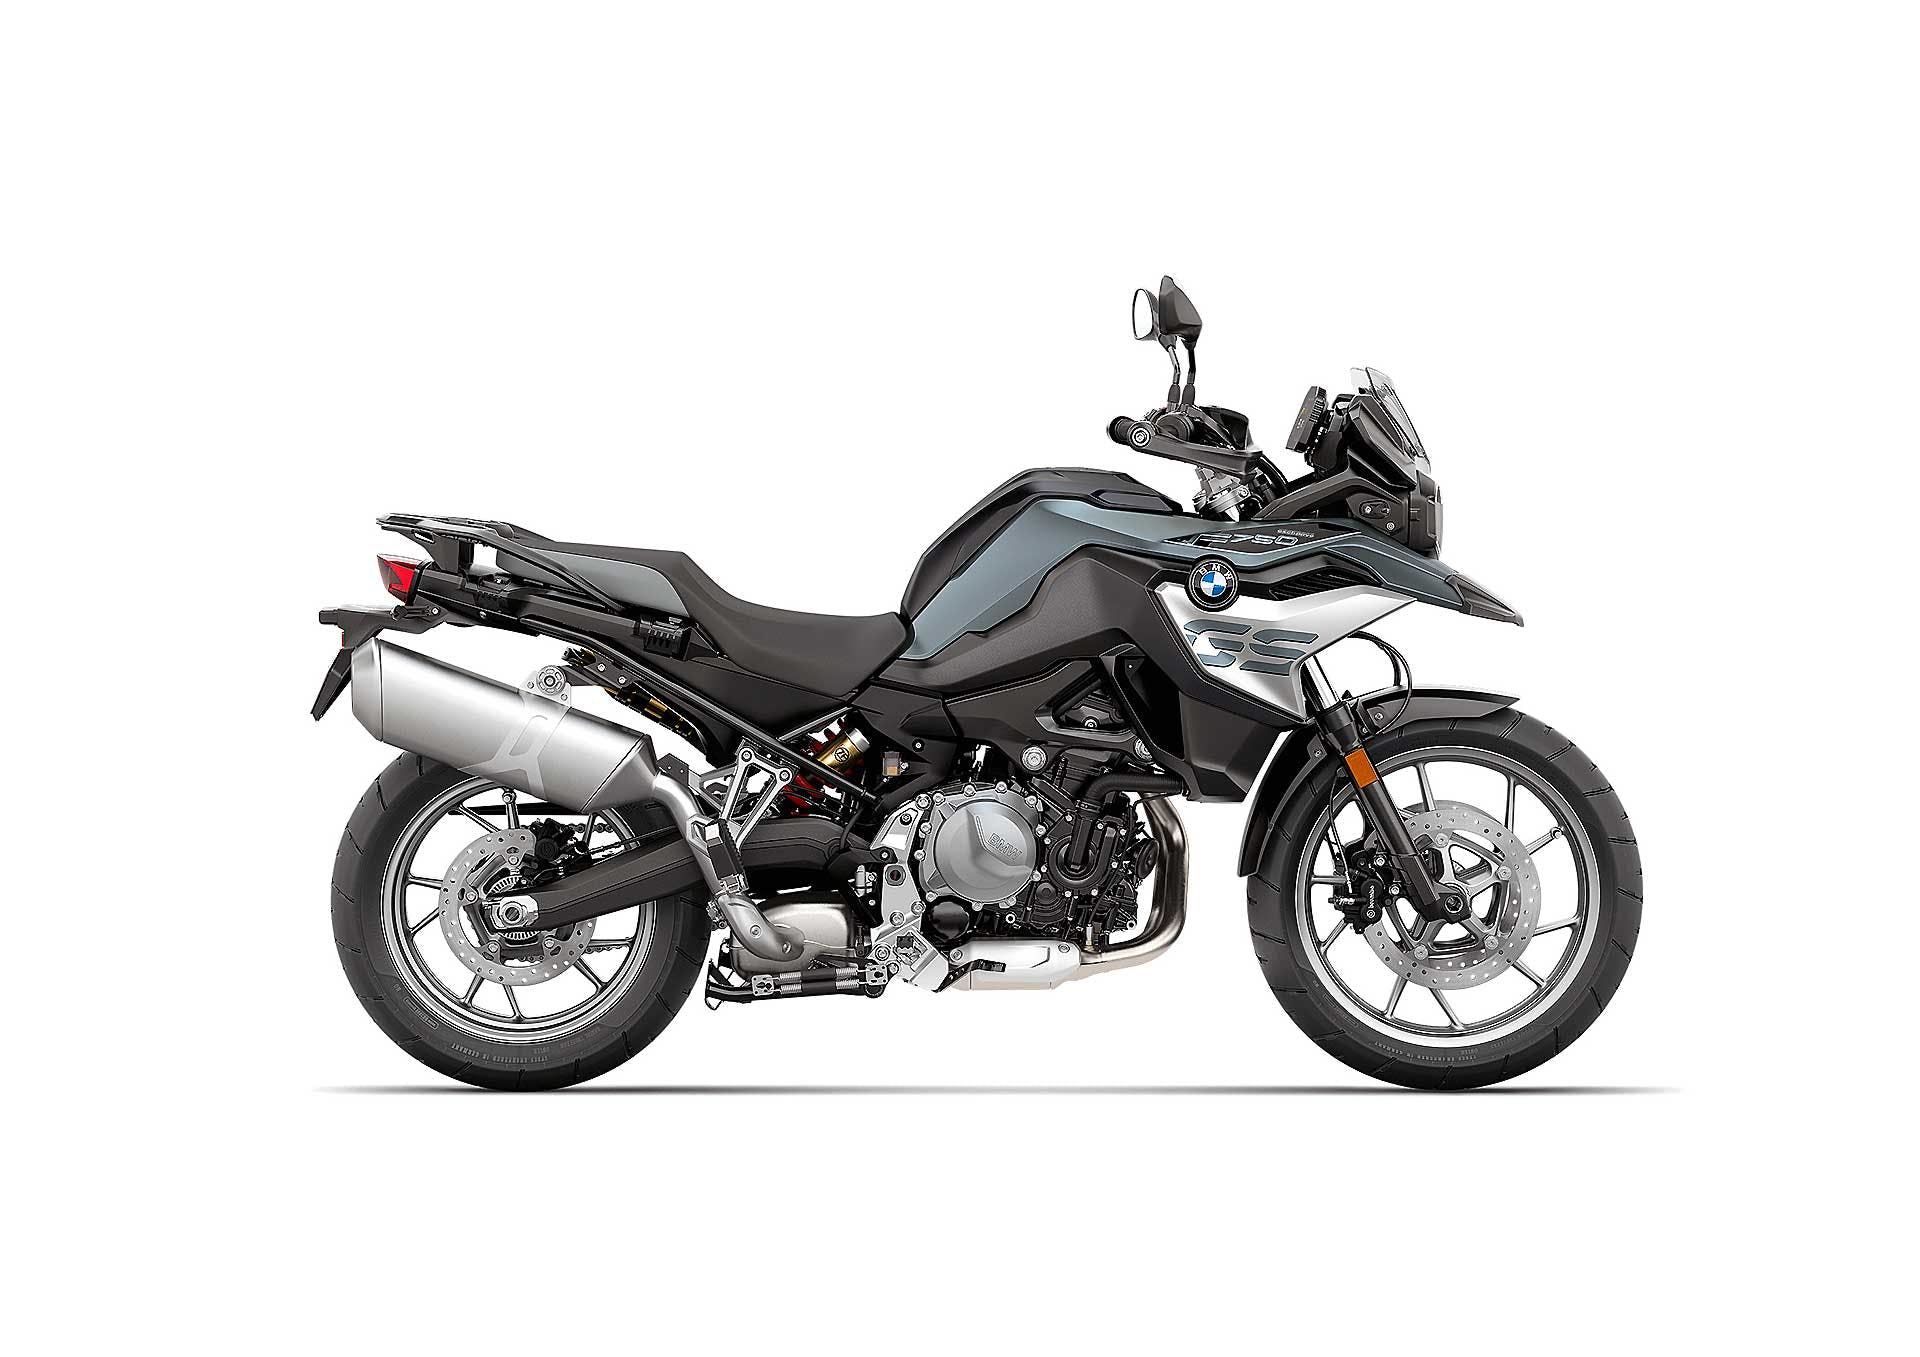 BMW-f-750-gs-exclusive-2020